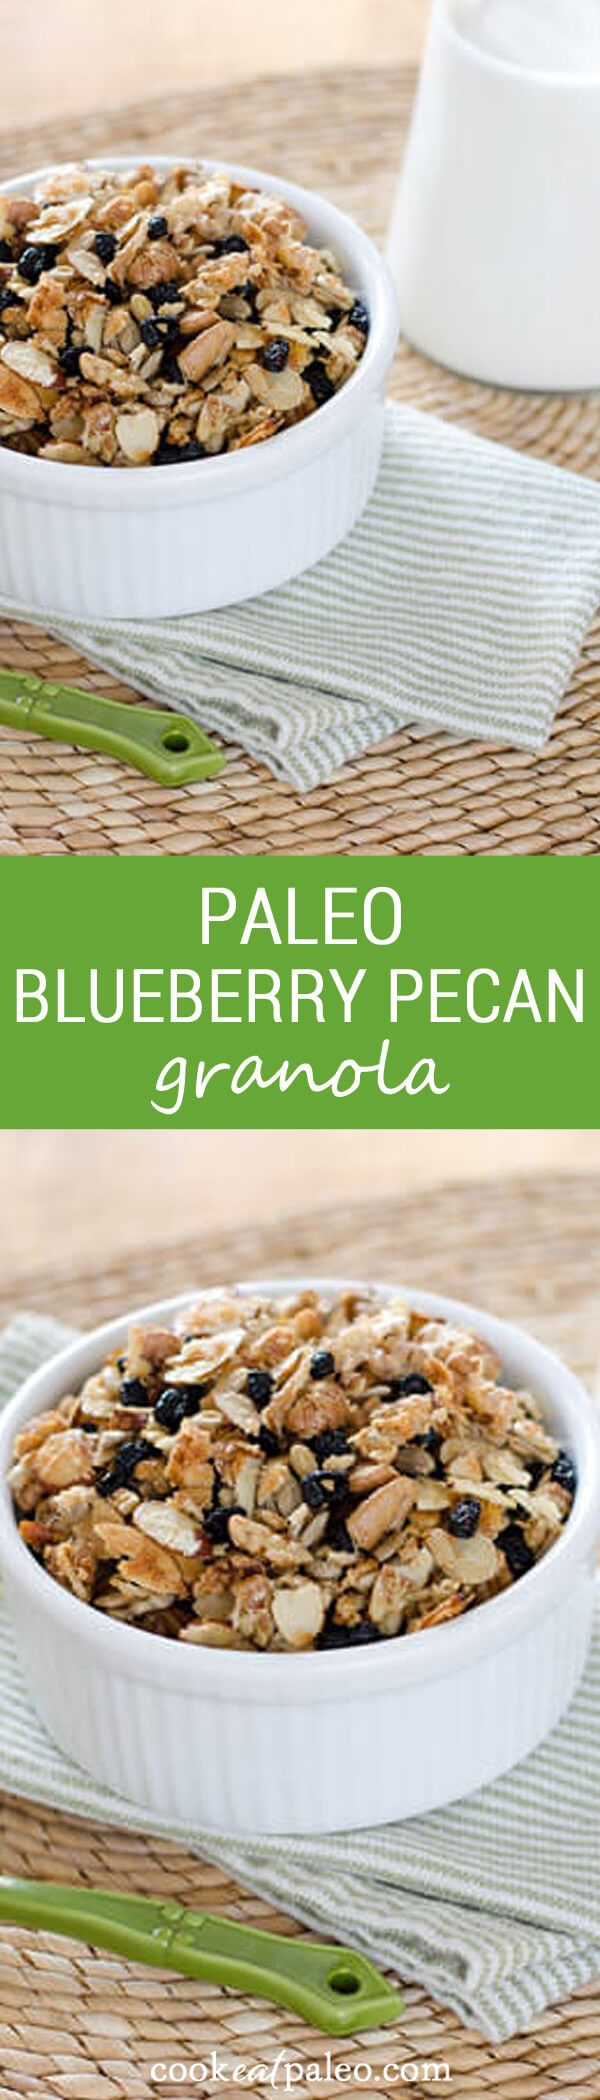 Blueberry Pecan Paleo Granola | Recipe | Lost, Almonds and ...